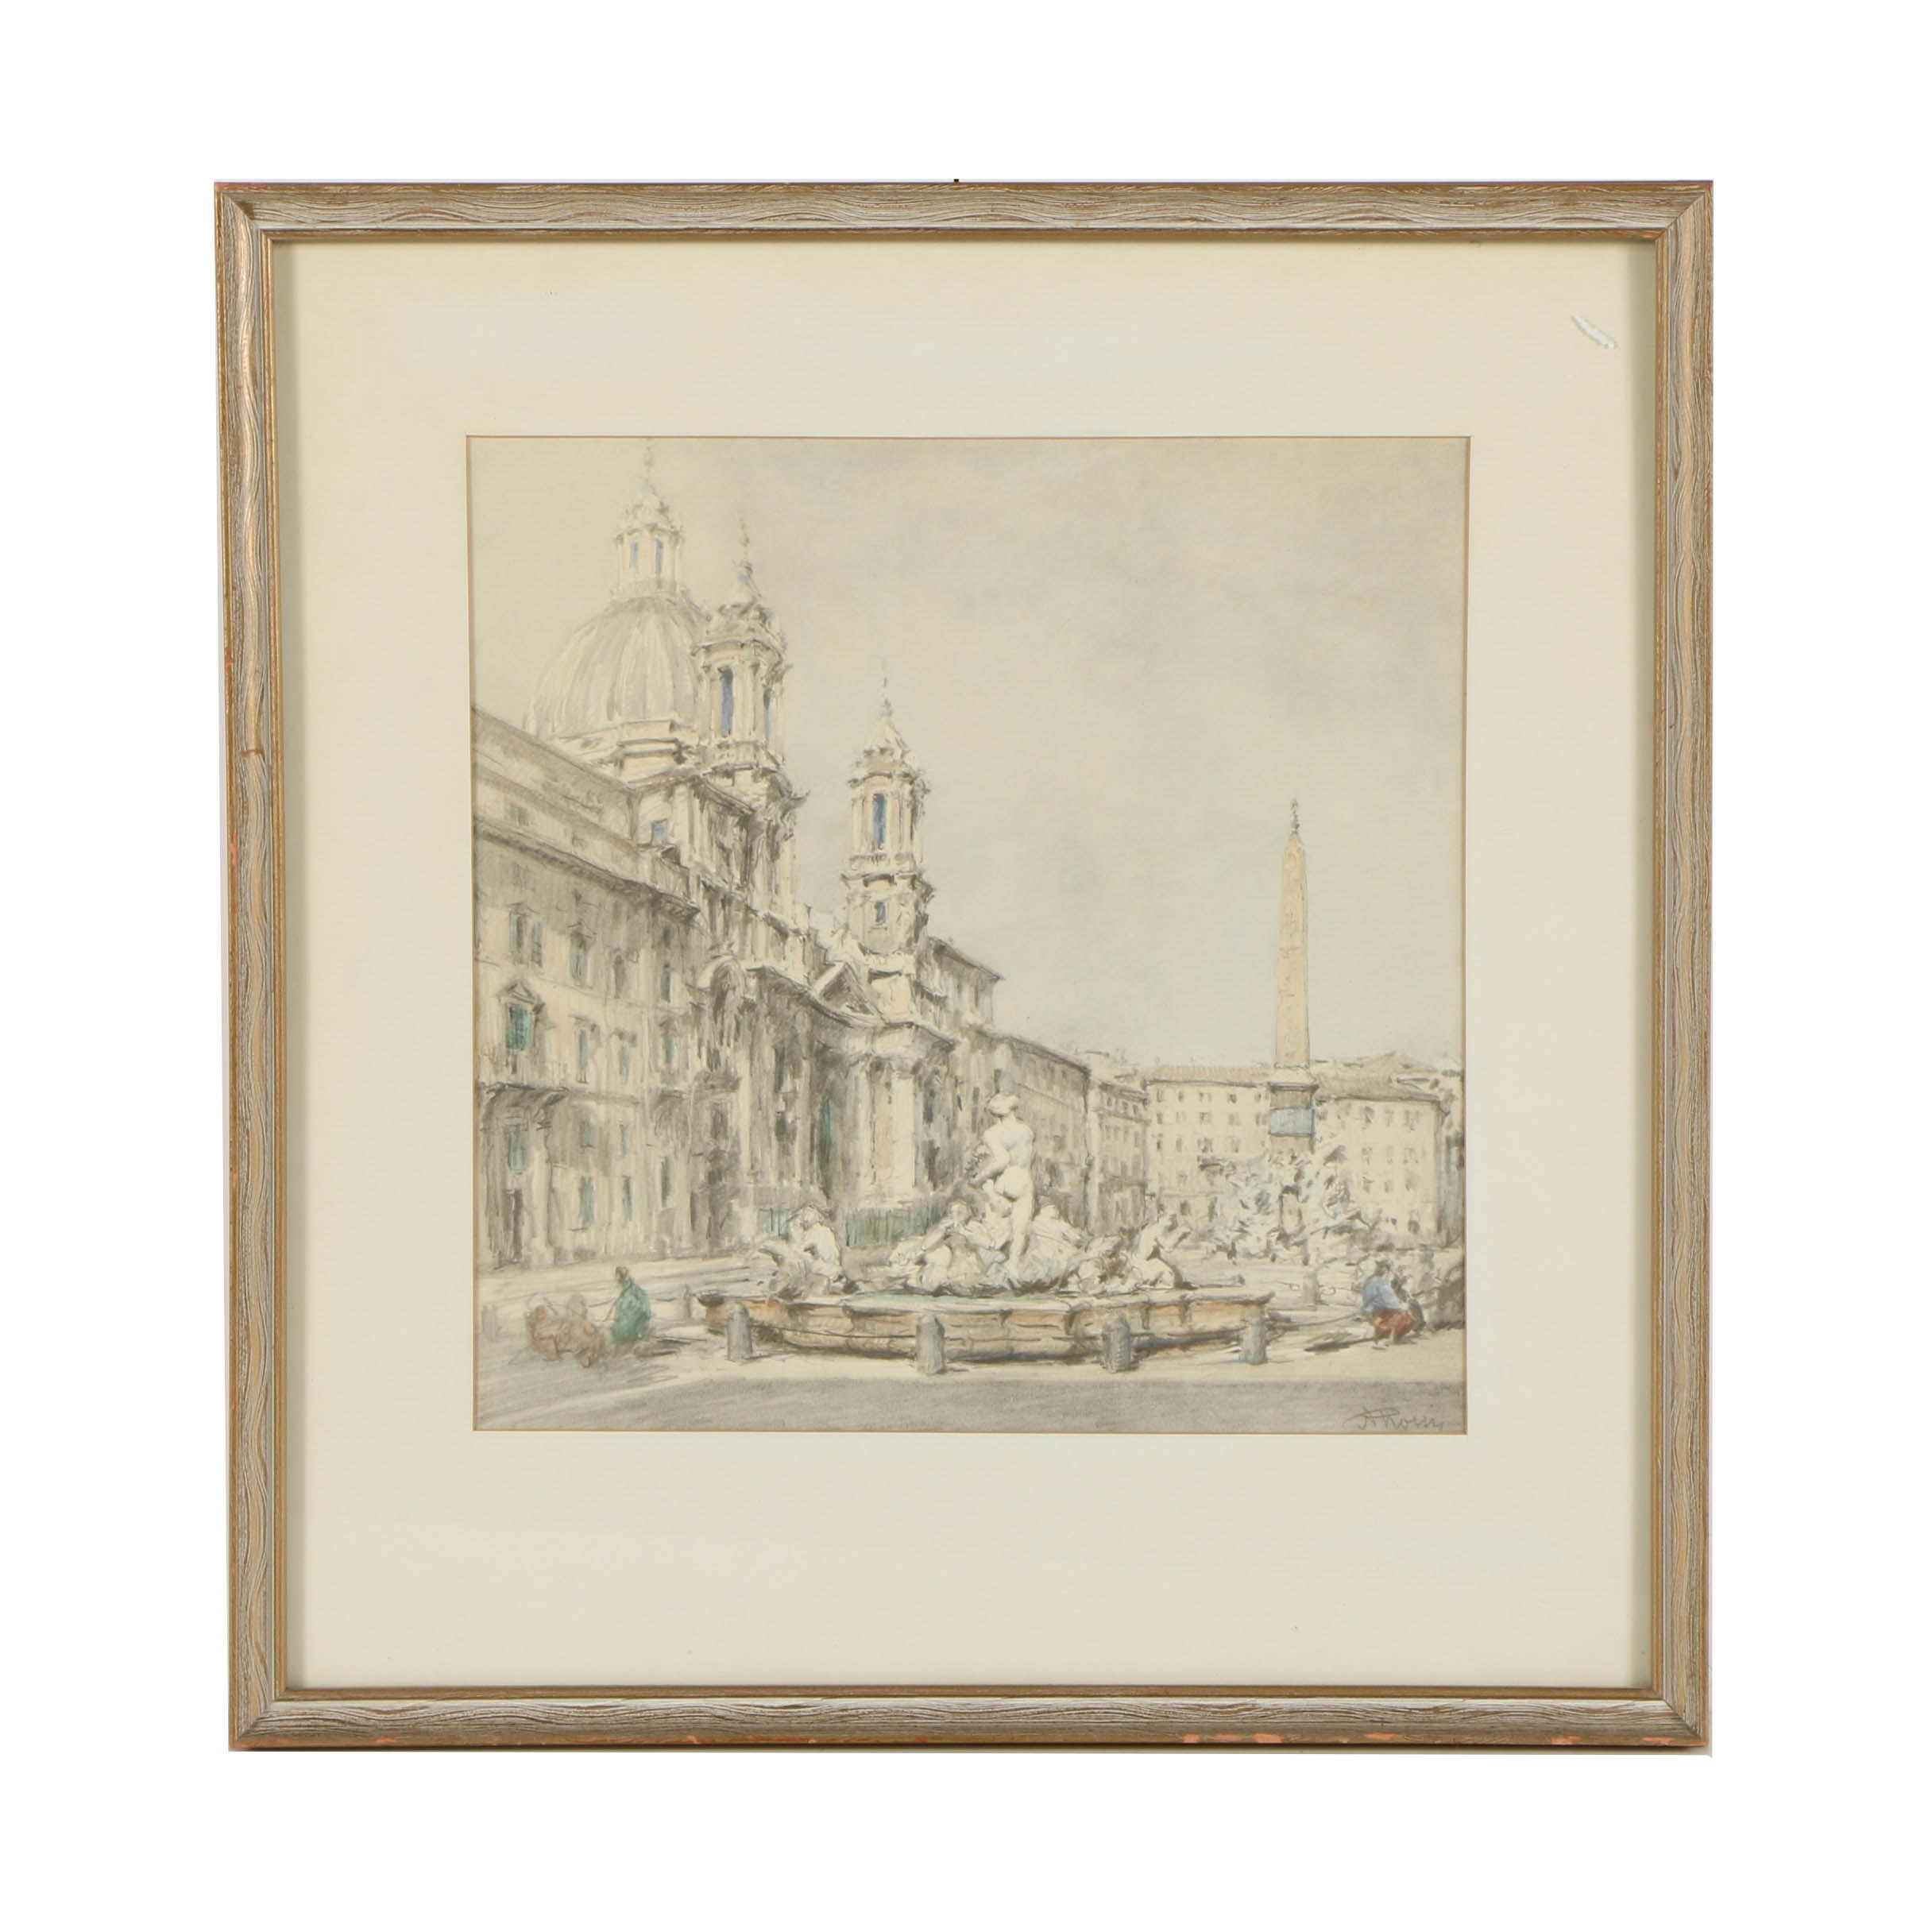 A. Rossi Offset Lithograph Print on Paper of European Plaza Street Scene